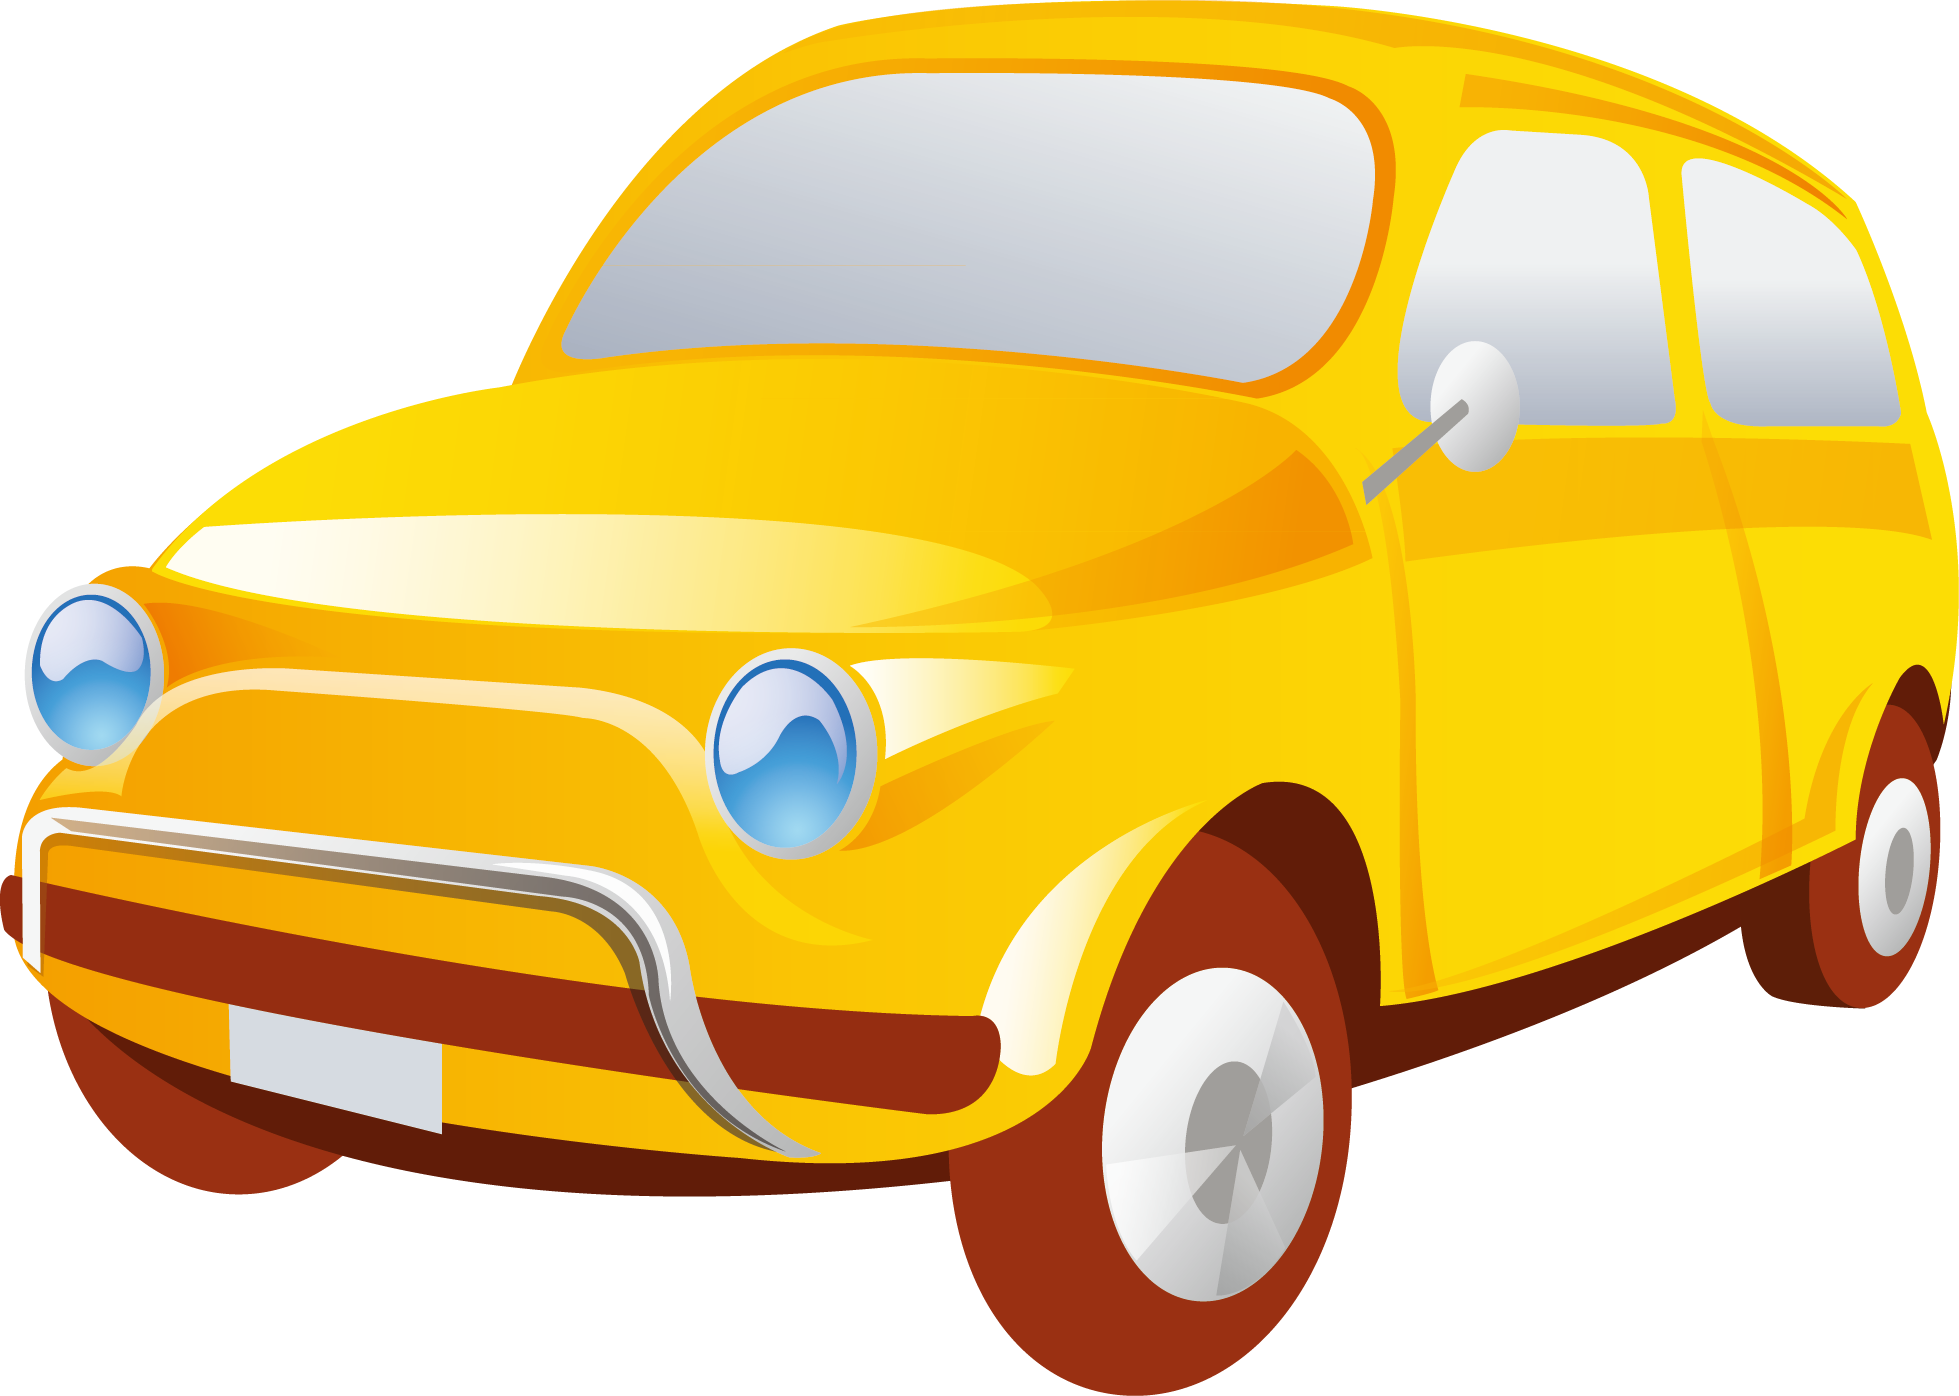 Old car vector clipart front view vector freeuse download Flashcard Clip art - Car decoration design vector 1959*1396 ... vector freeuse download